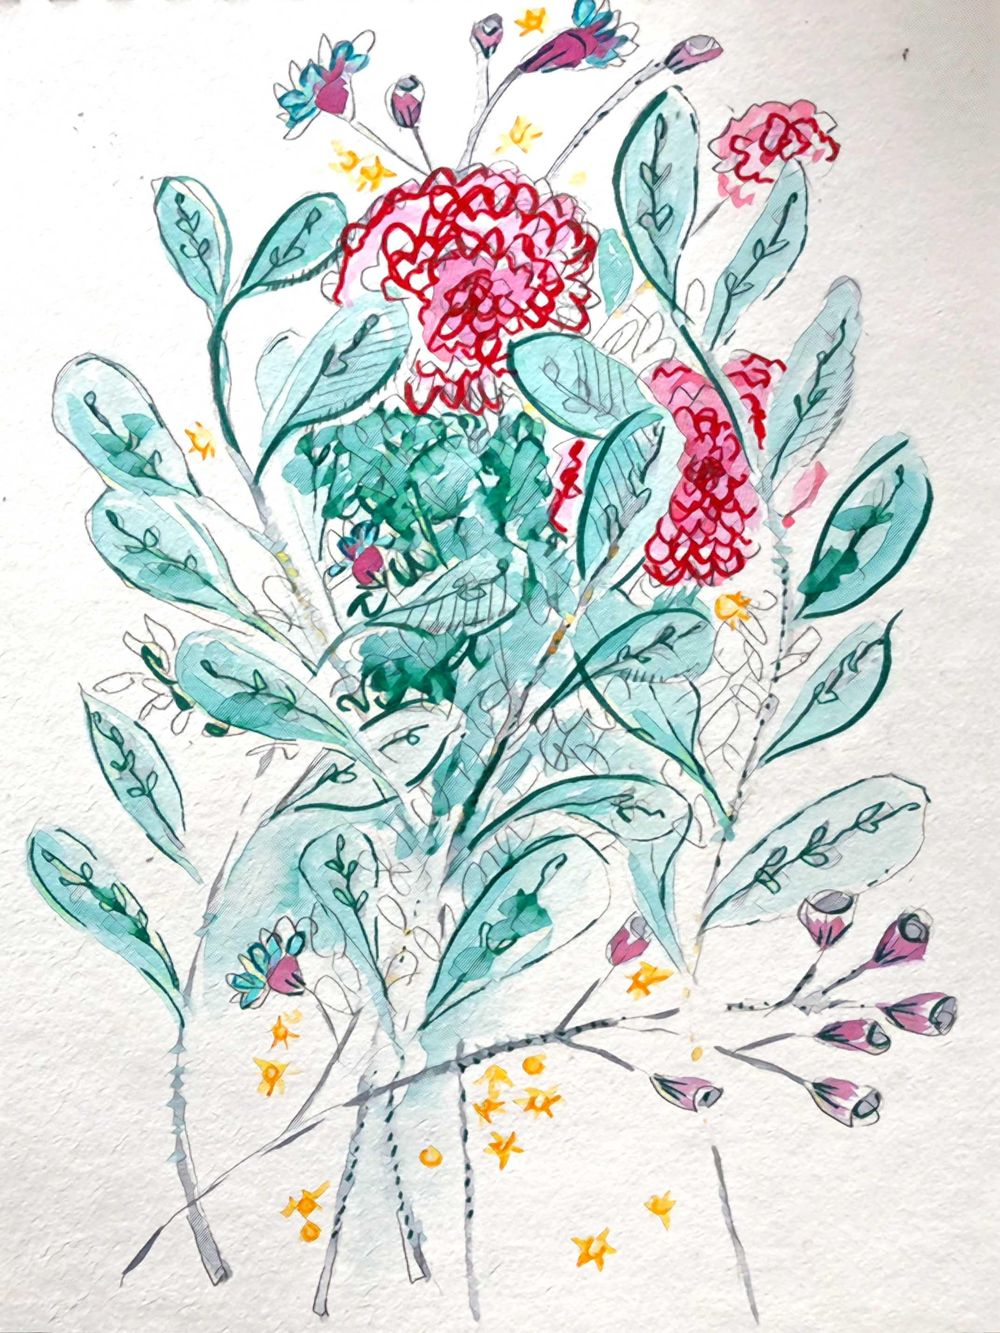 Making my own expressive florals - image 2 - student project